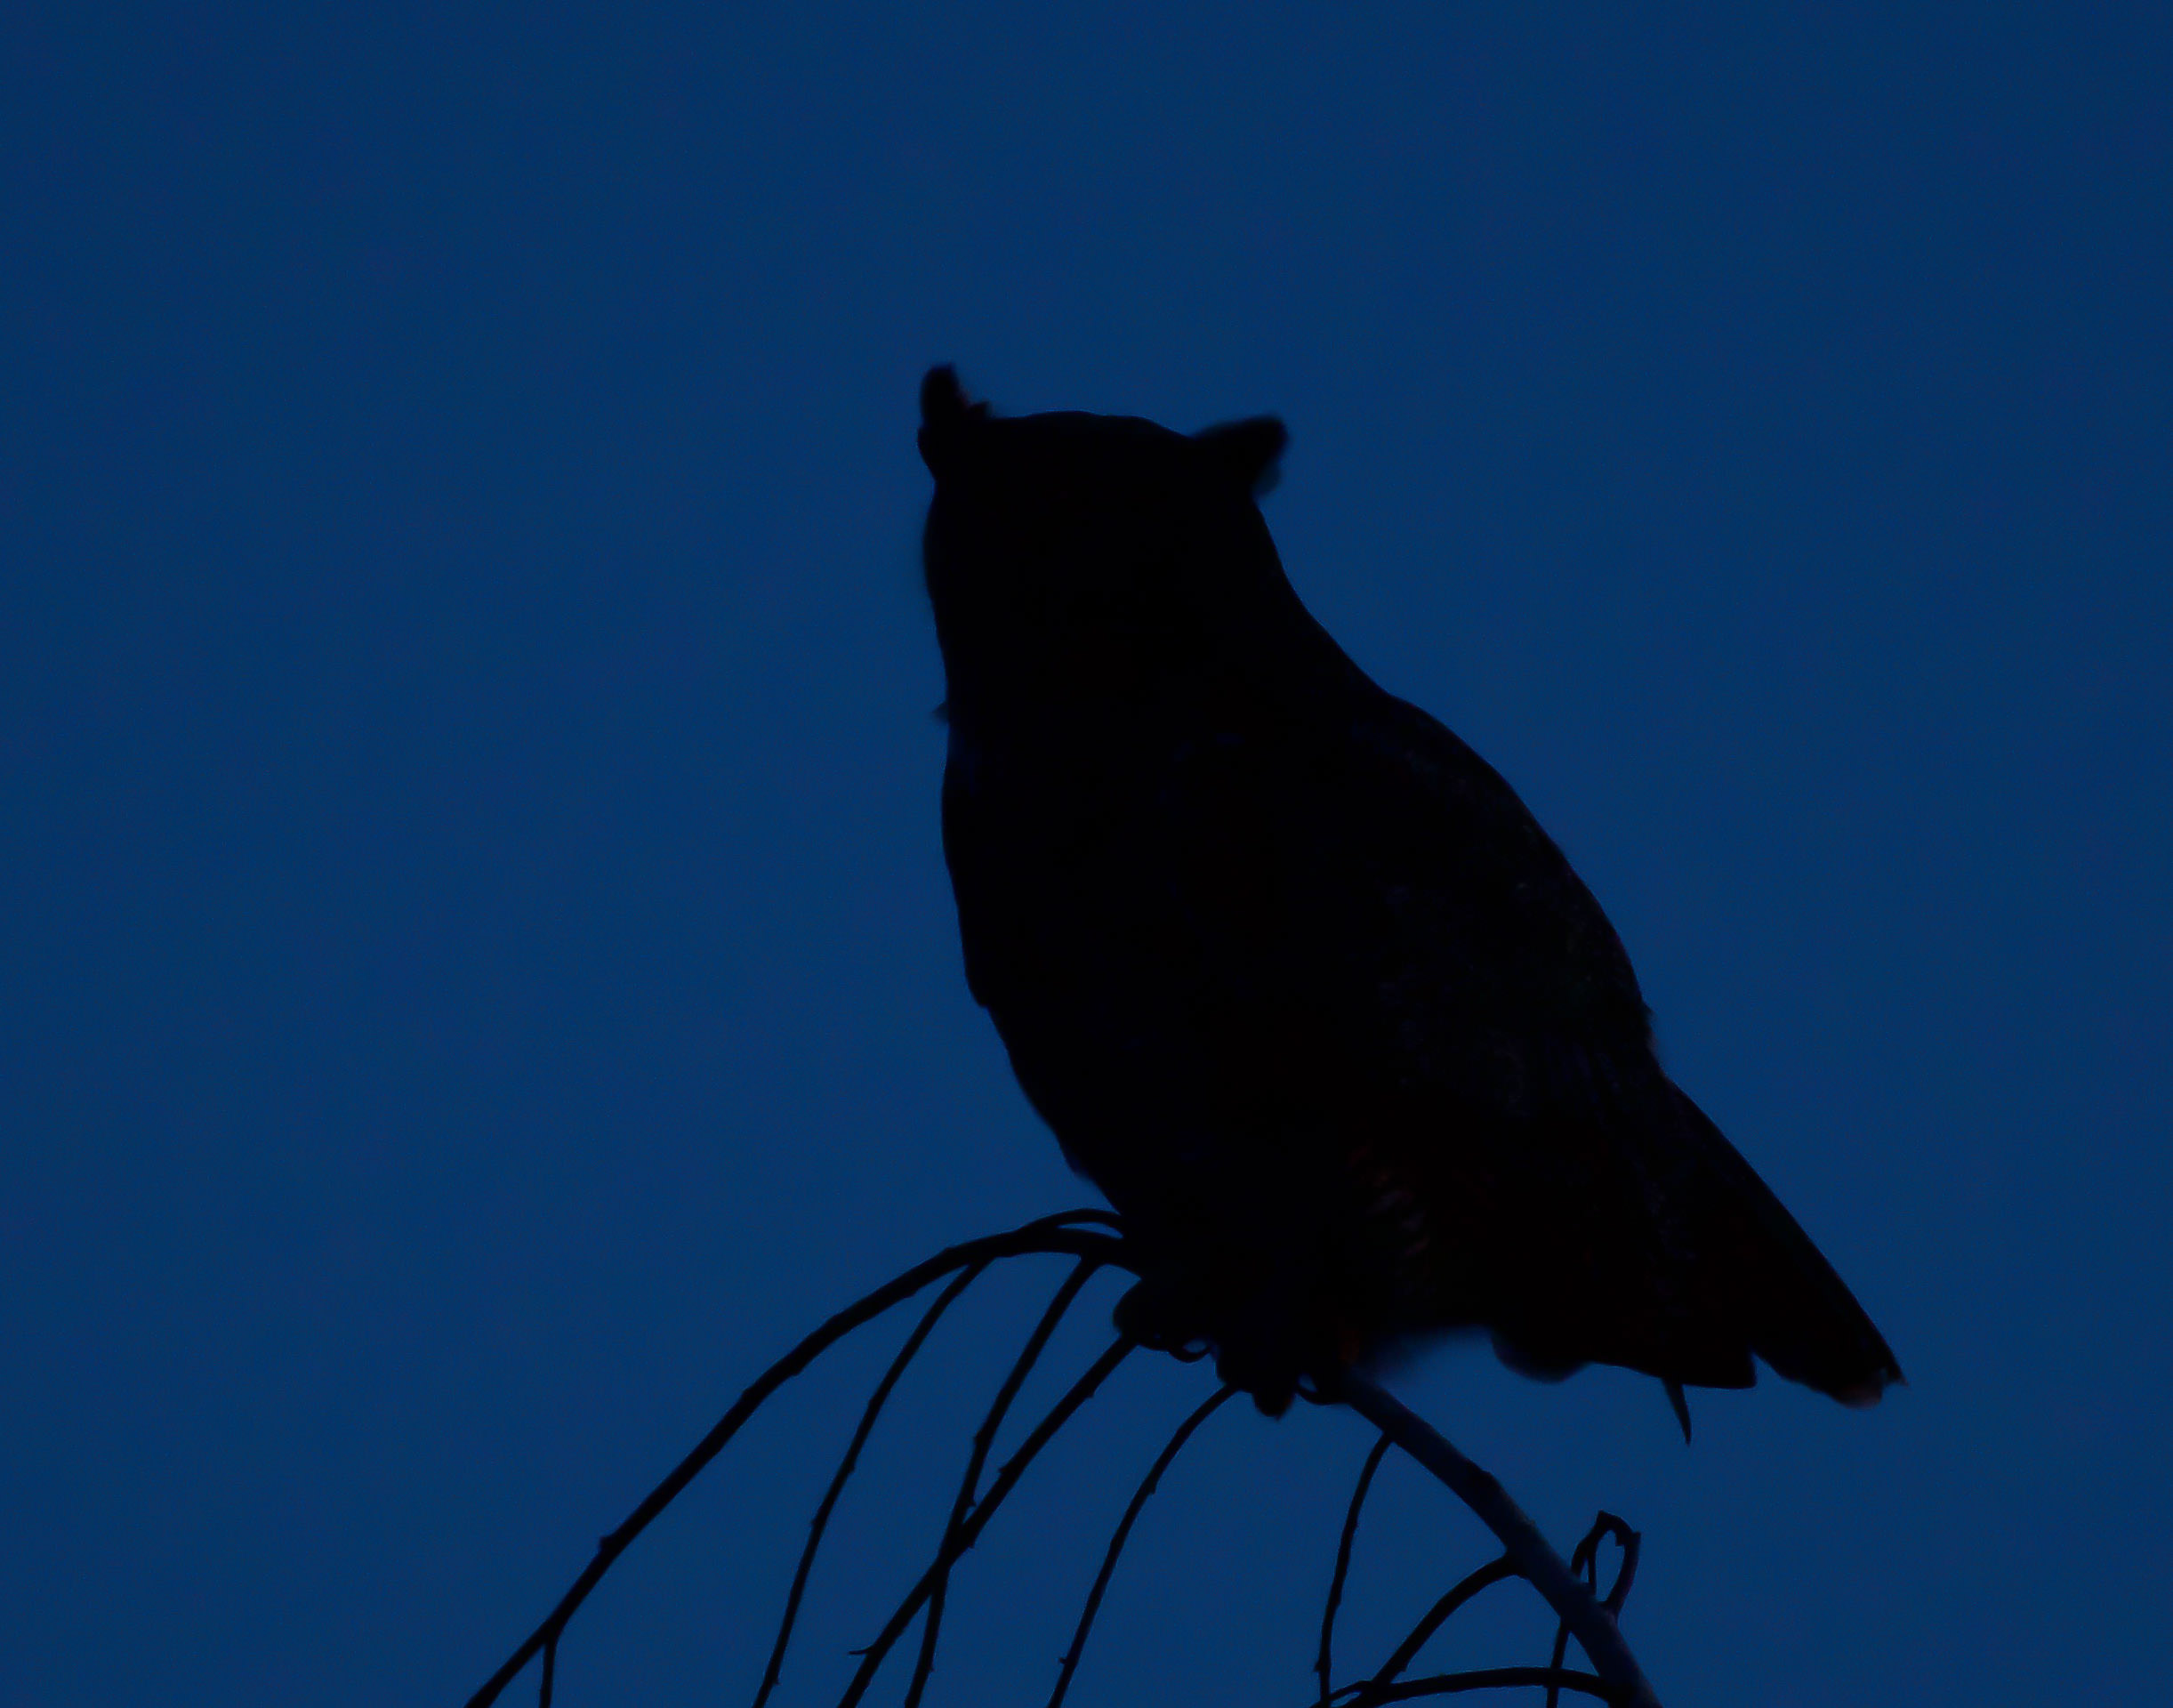 A great horned owl perched in silhouette in the evening sky